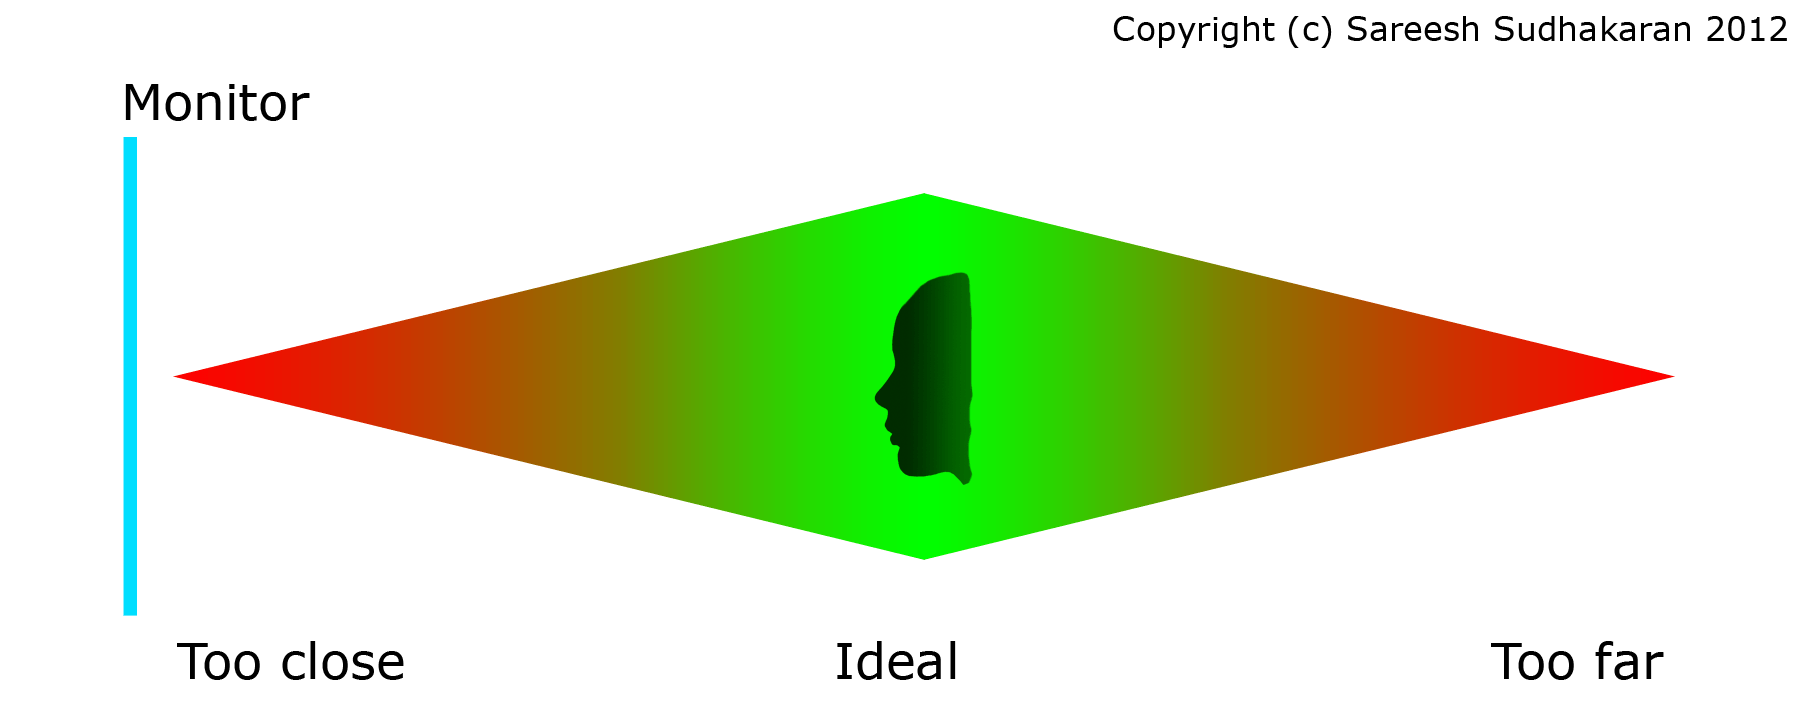 Ideal distance from monitor or display